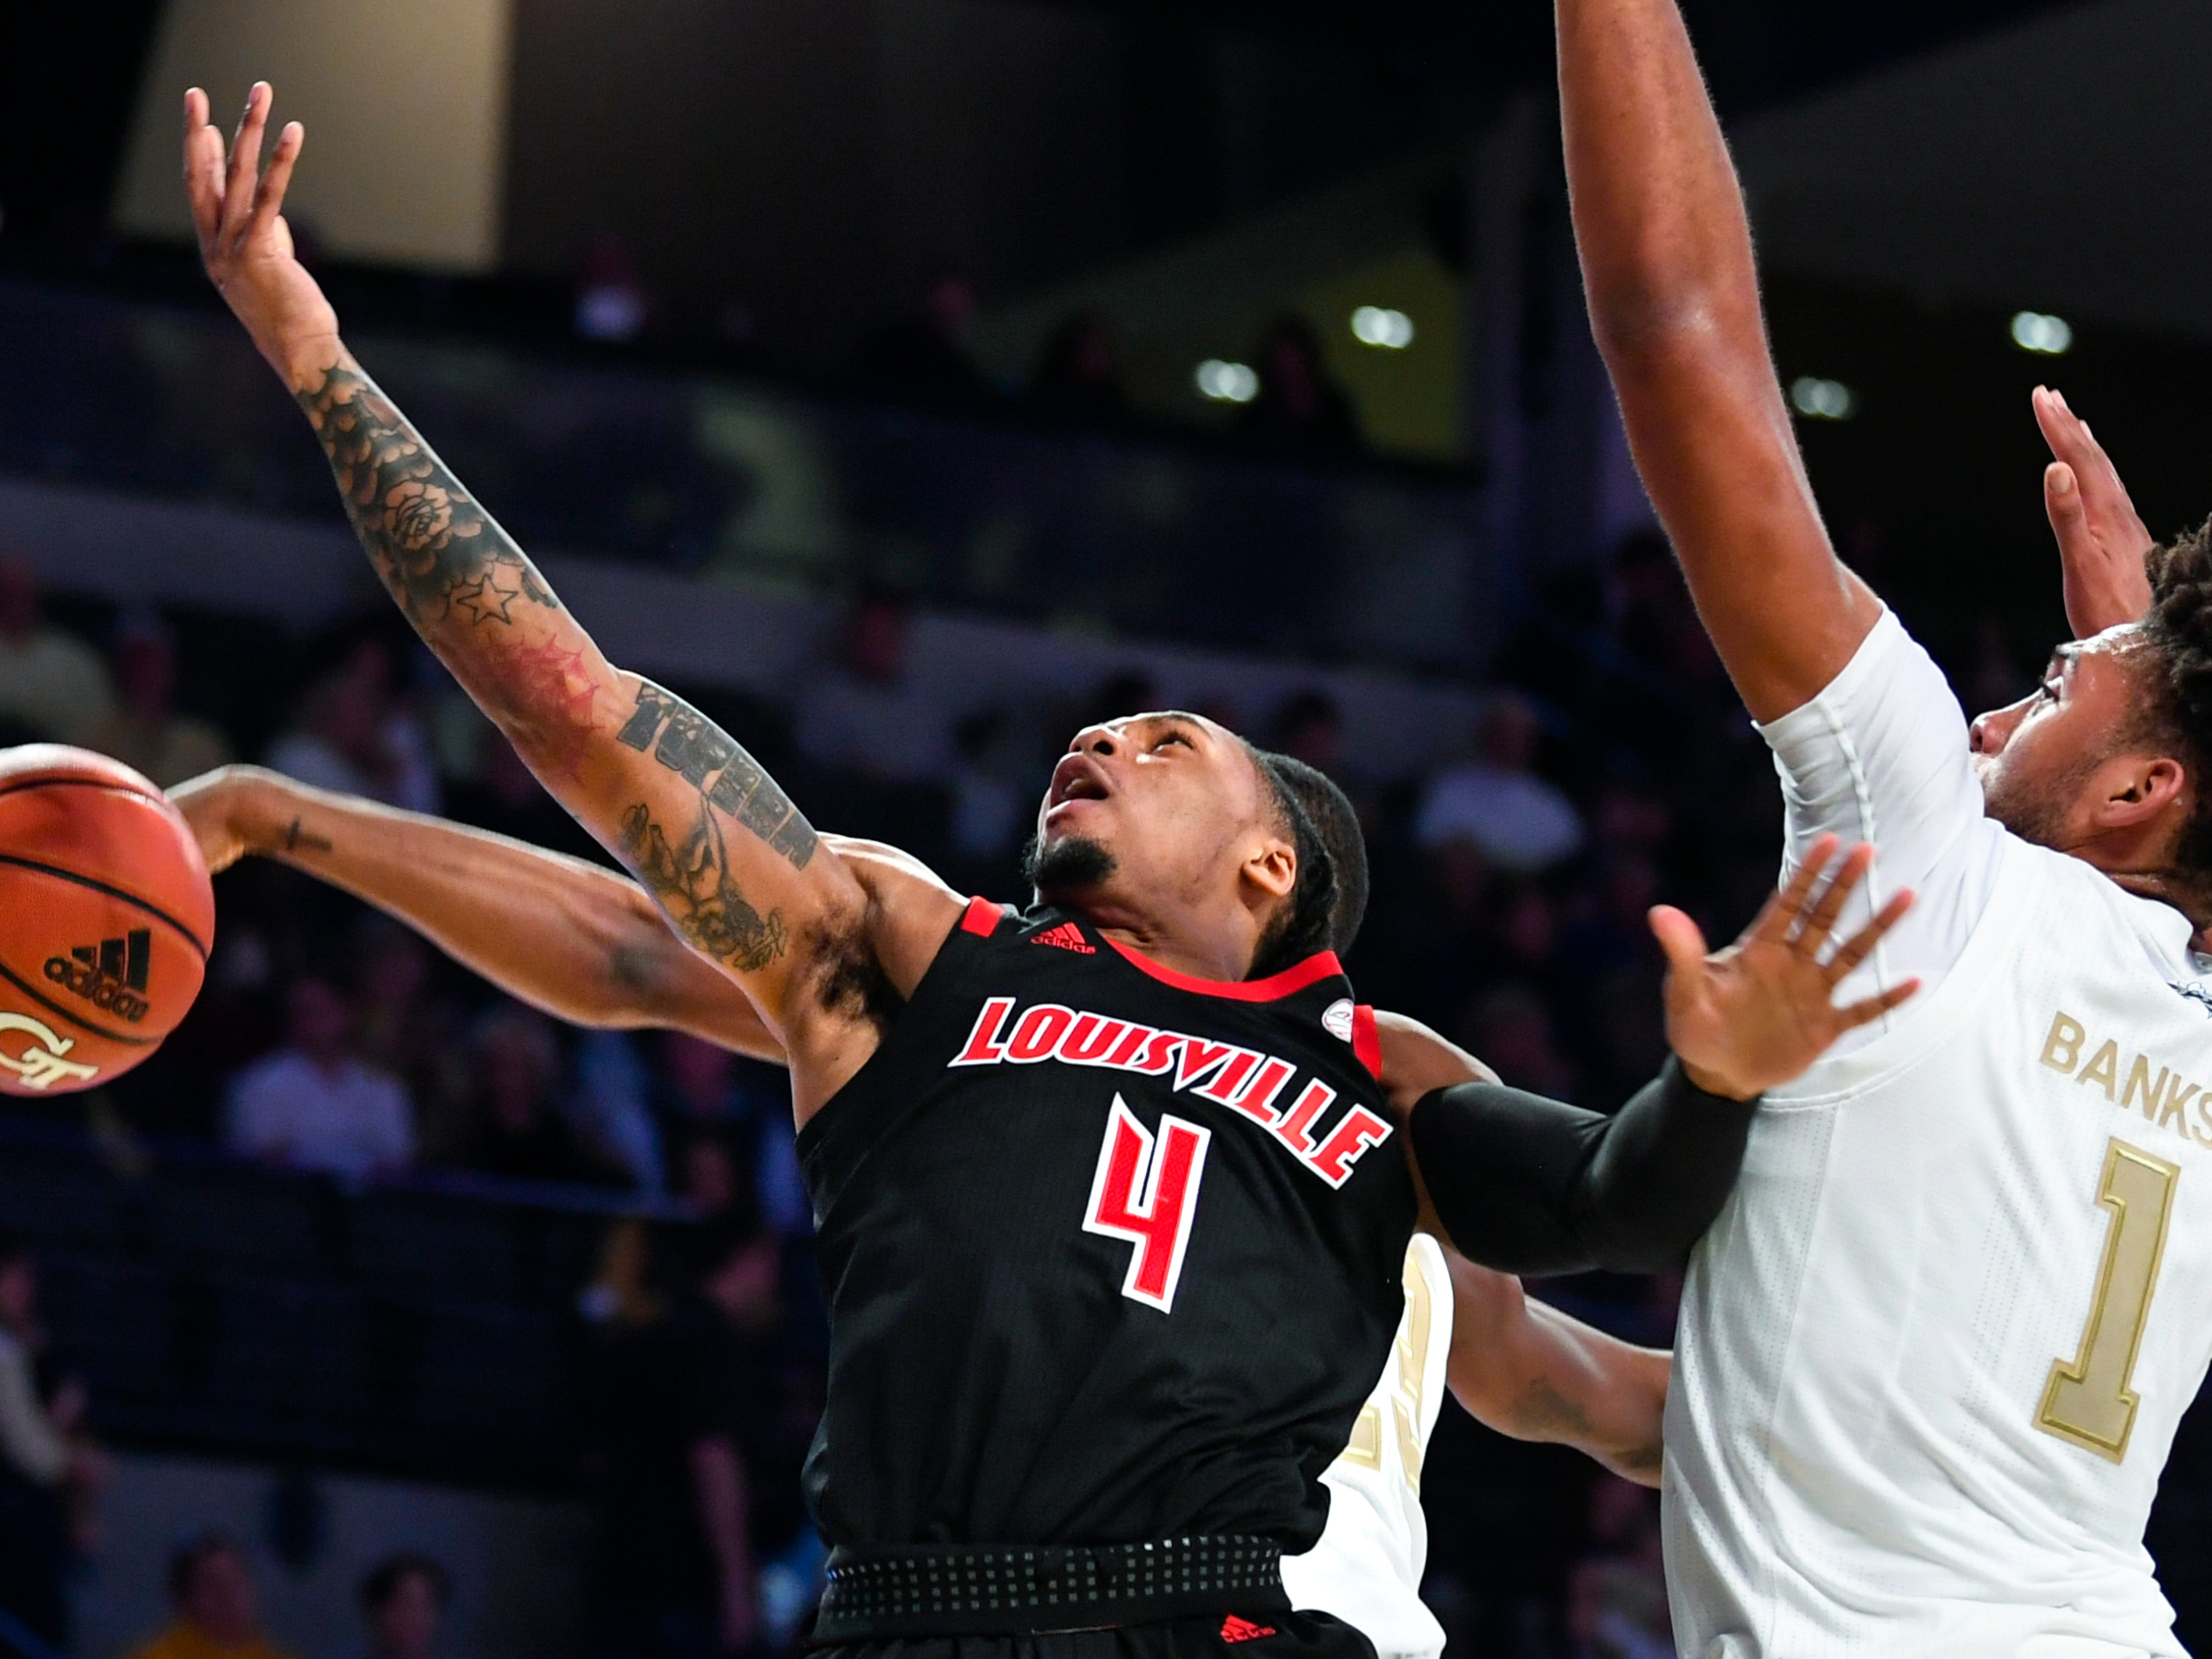 Louisville guard Khwan Fore (4) is stripped of the ball from behind by Georgia Tech guard Curtis Haywood II as forward James Banks III also defends during the first half of an NCAA college basketball game Saturday, Jan. 19, 2019, in Atlanta.